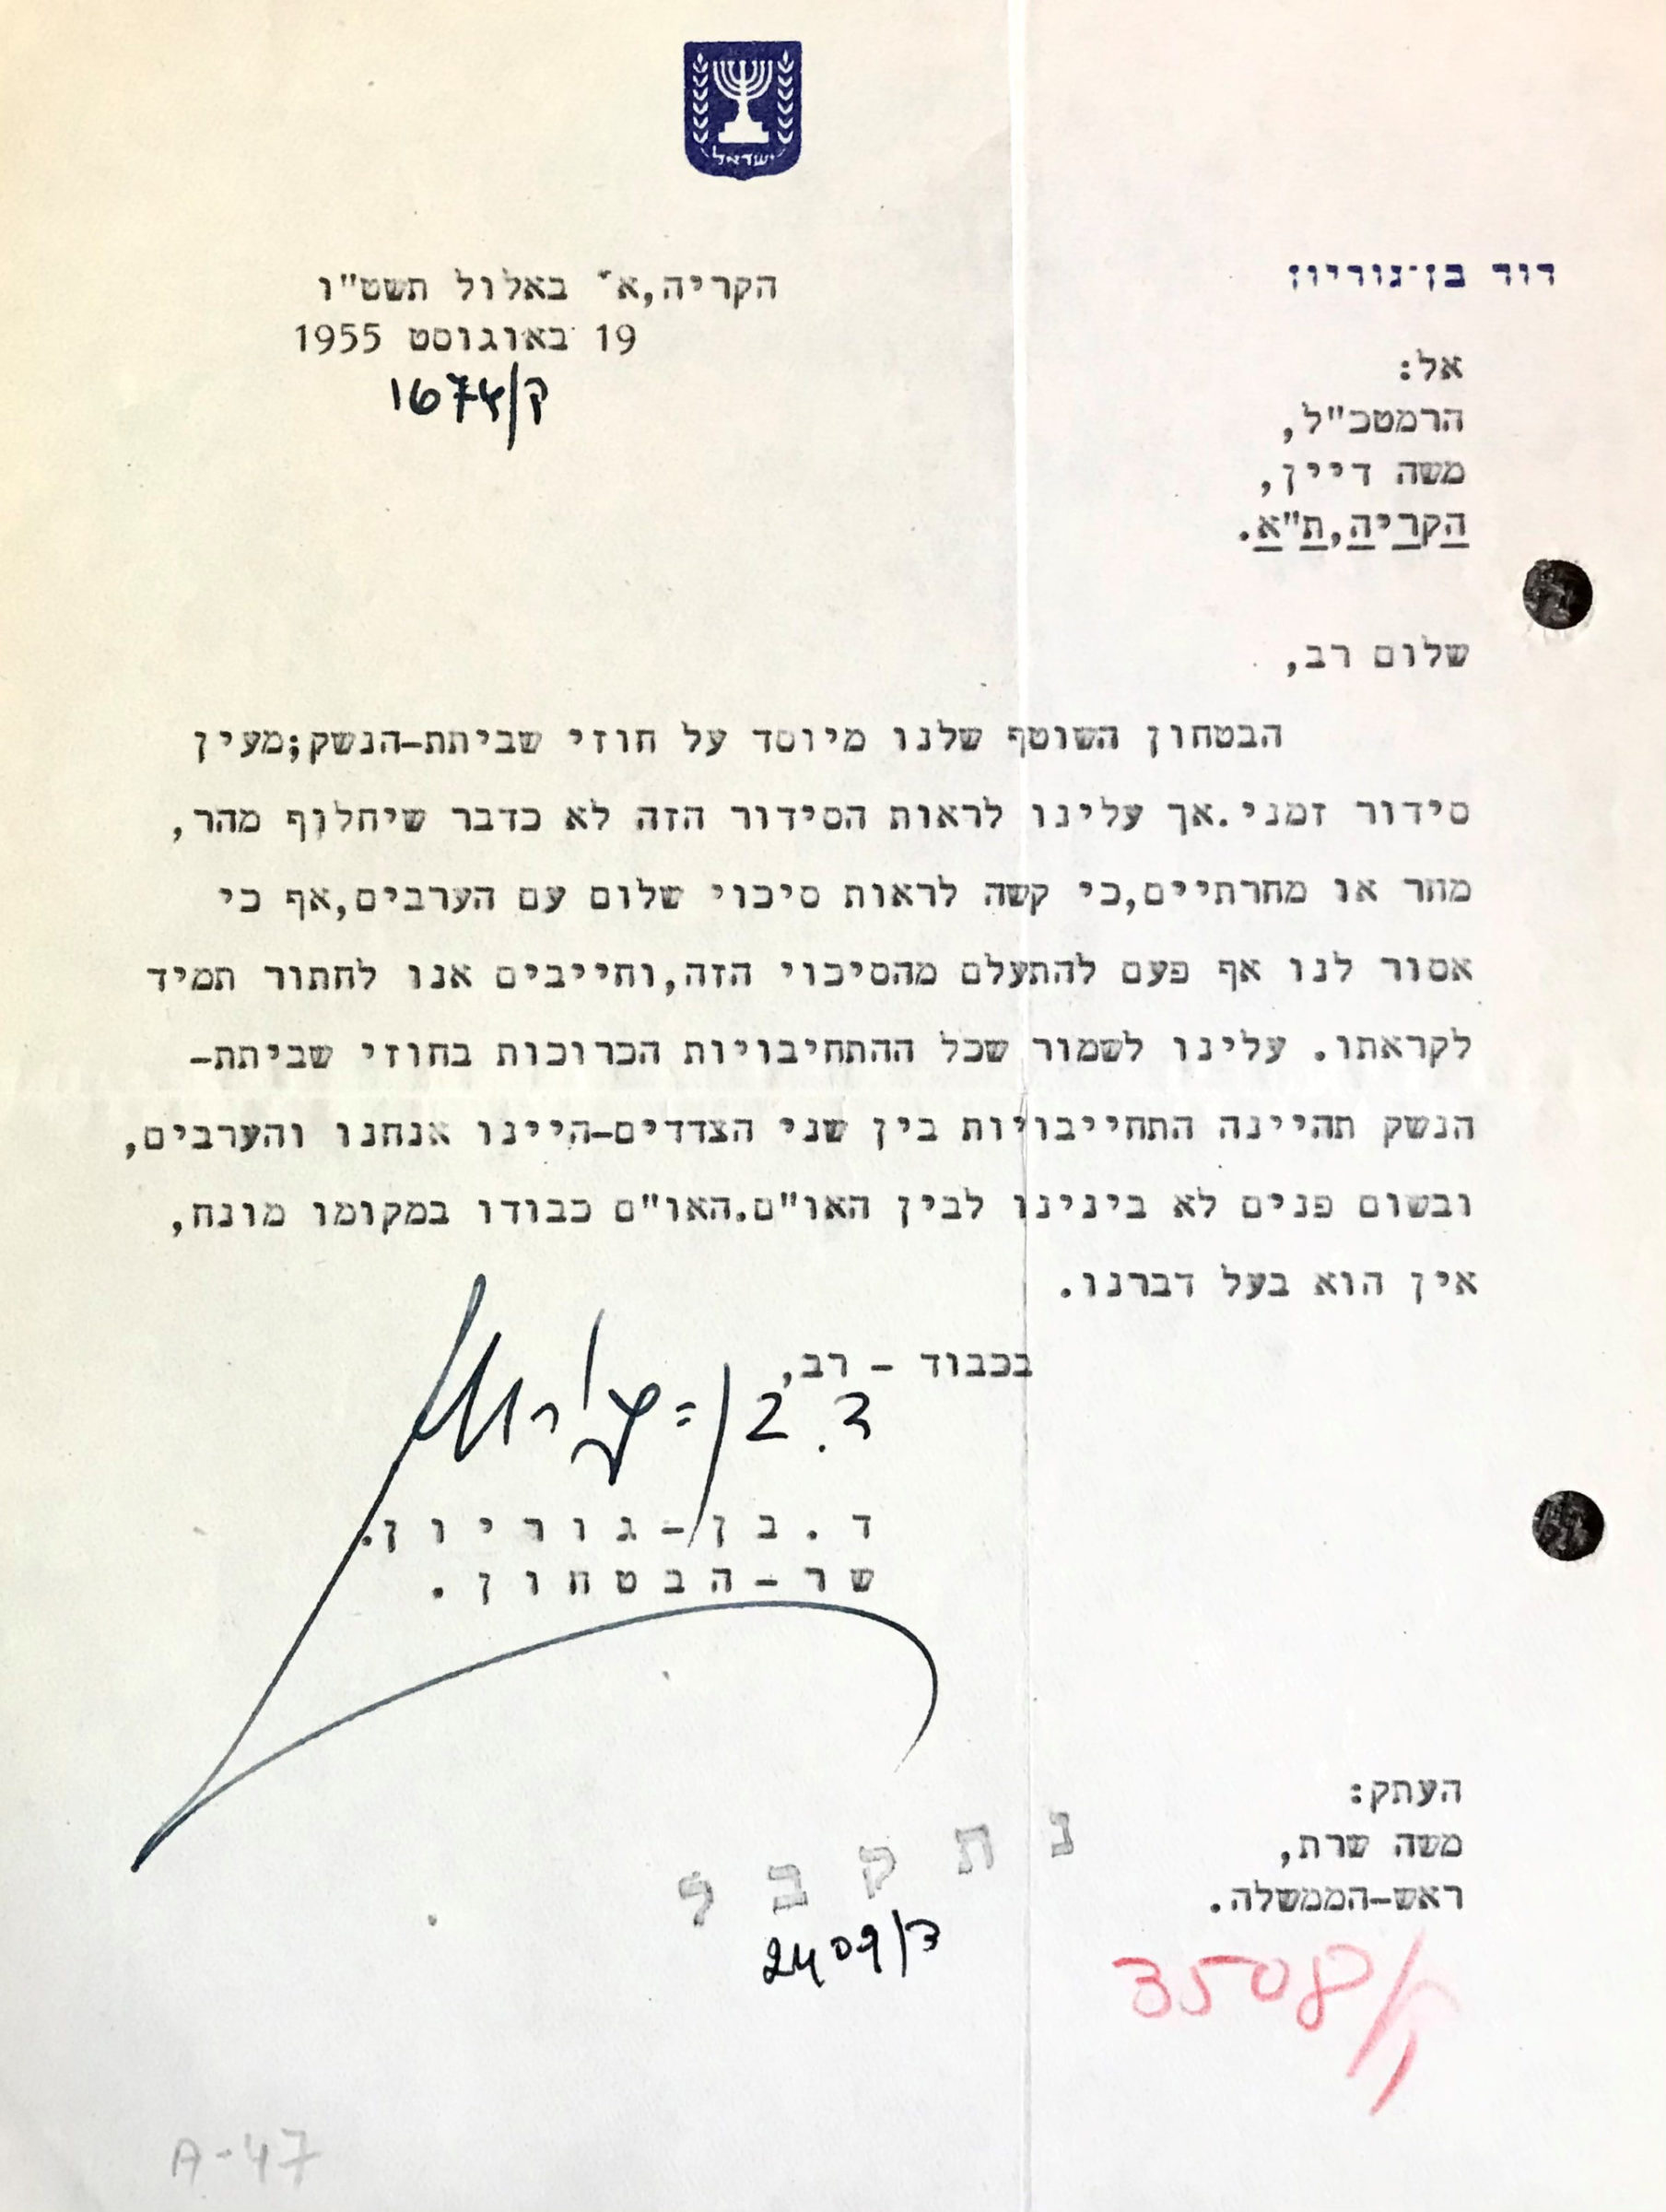 """Defense Minister Ben-Gurion to Chief of Staff Dayan: """"It is difficult to see a chance of peace with the Arabs, although we must never ignore this chance, and we must always strive for it"""""""